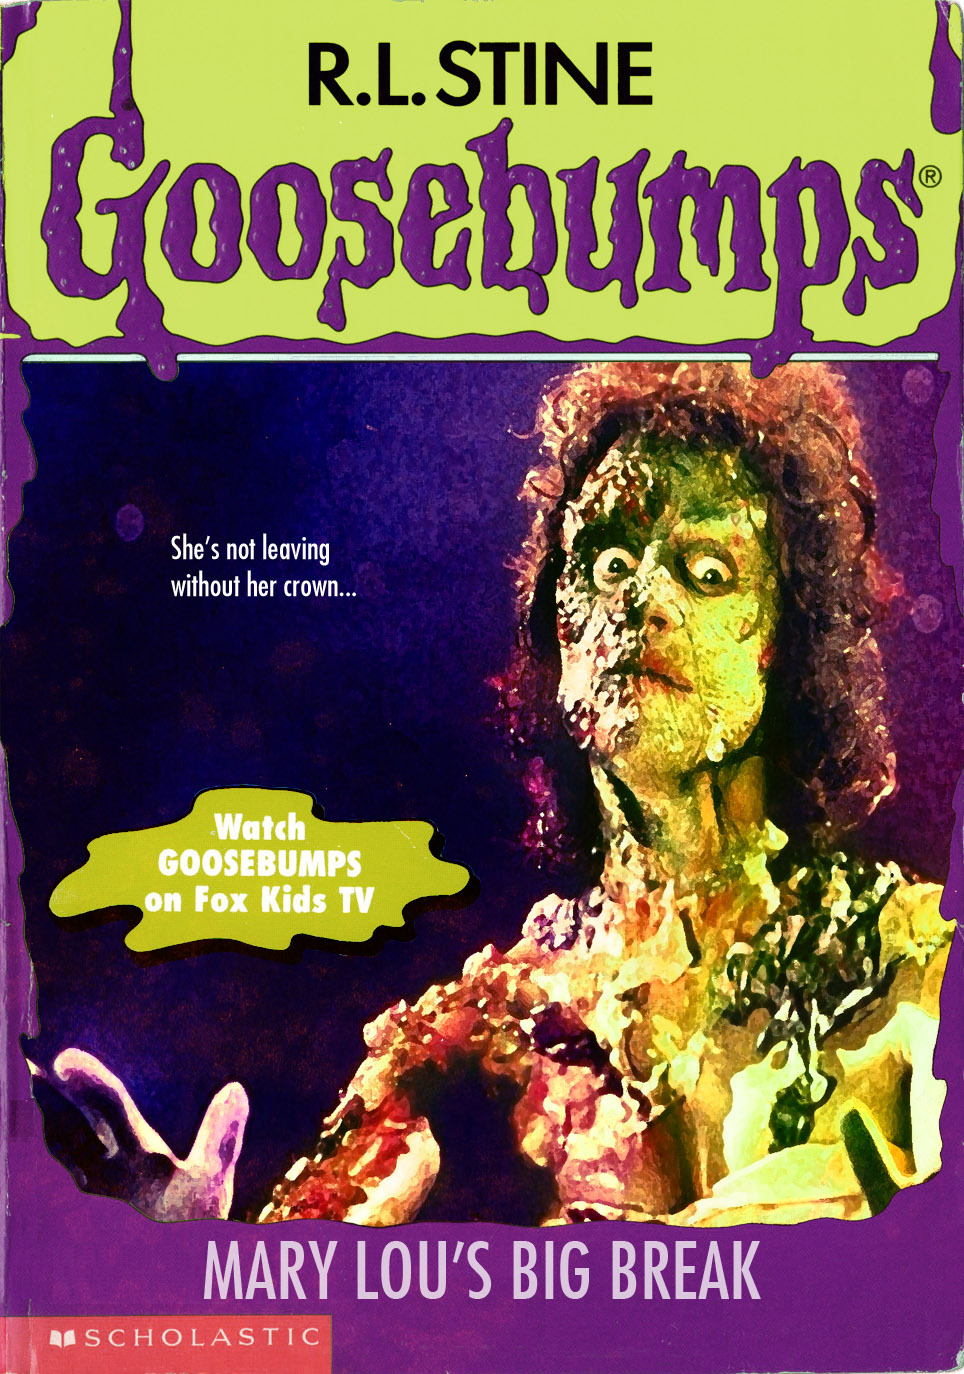 Horror as Goosebumps Covers - Prom Night 2